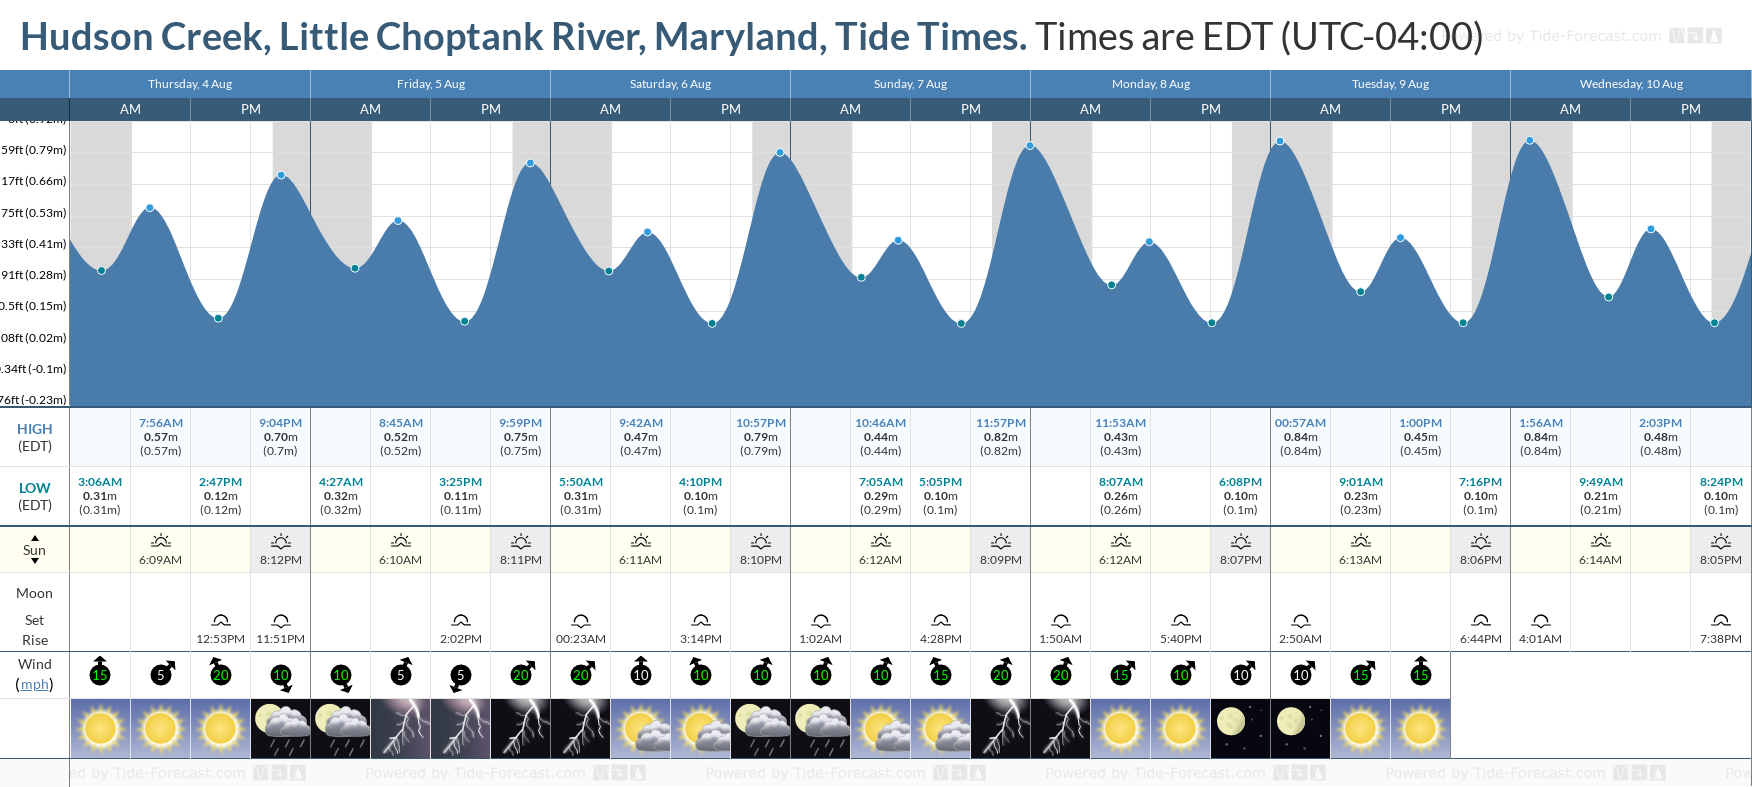 Hudson Creek, Little Choptank River, Maryland Tide Chart including high and low tide tide times for the next 7 days